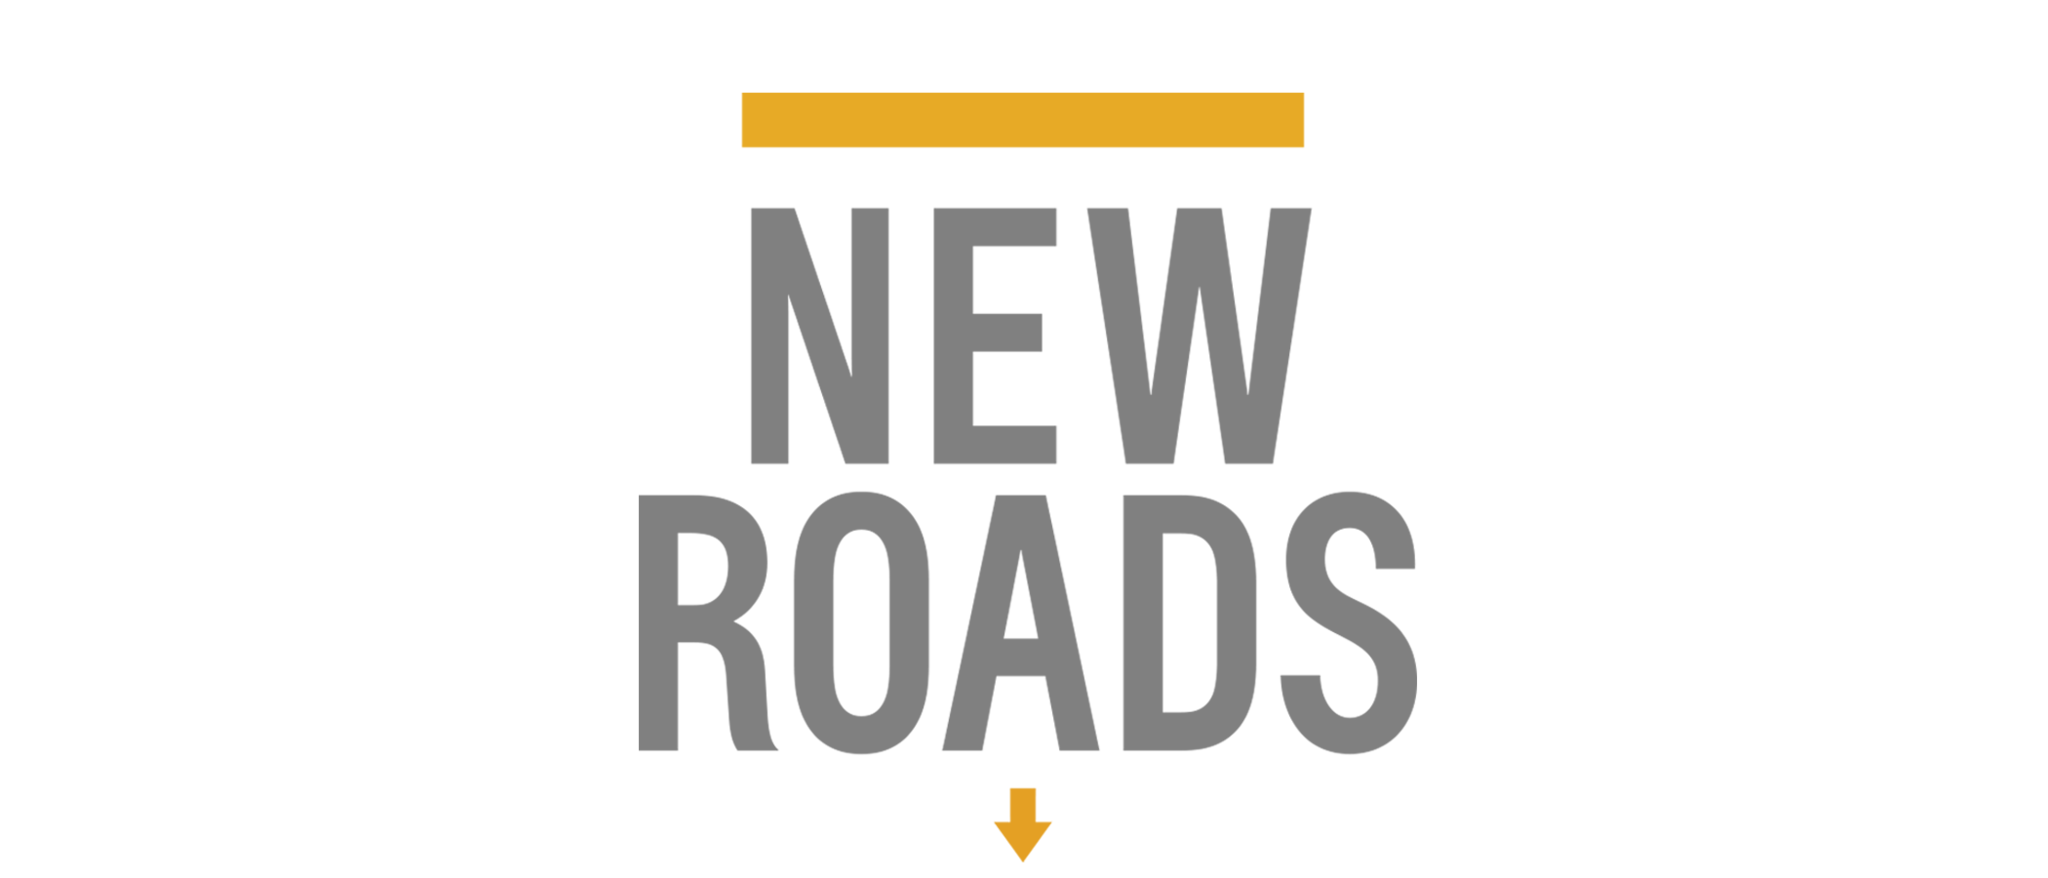 Revista New Roads de Chevrolet: Masthead